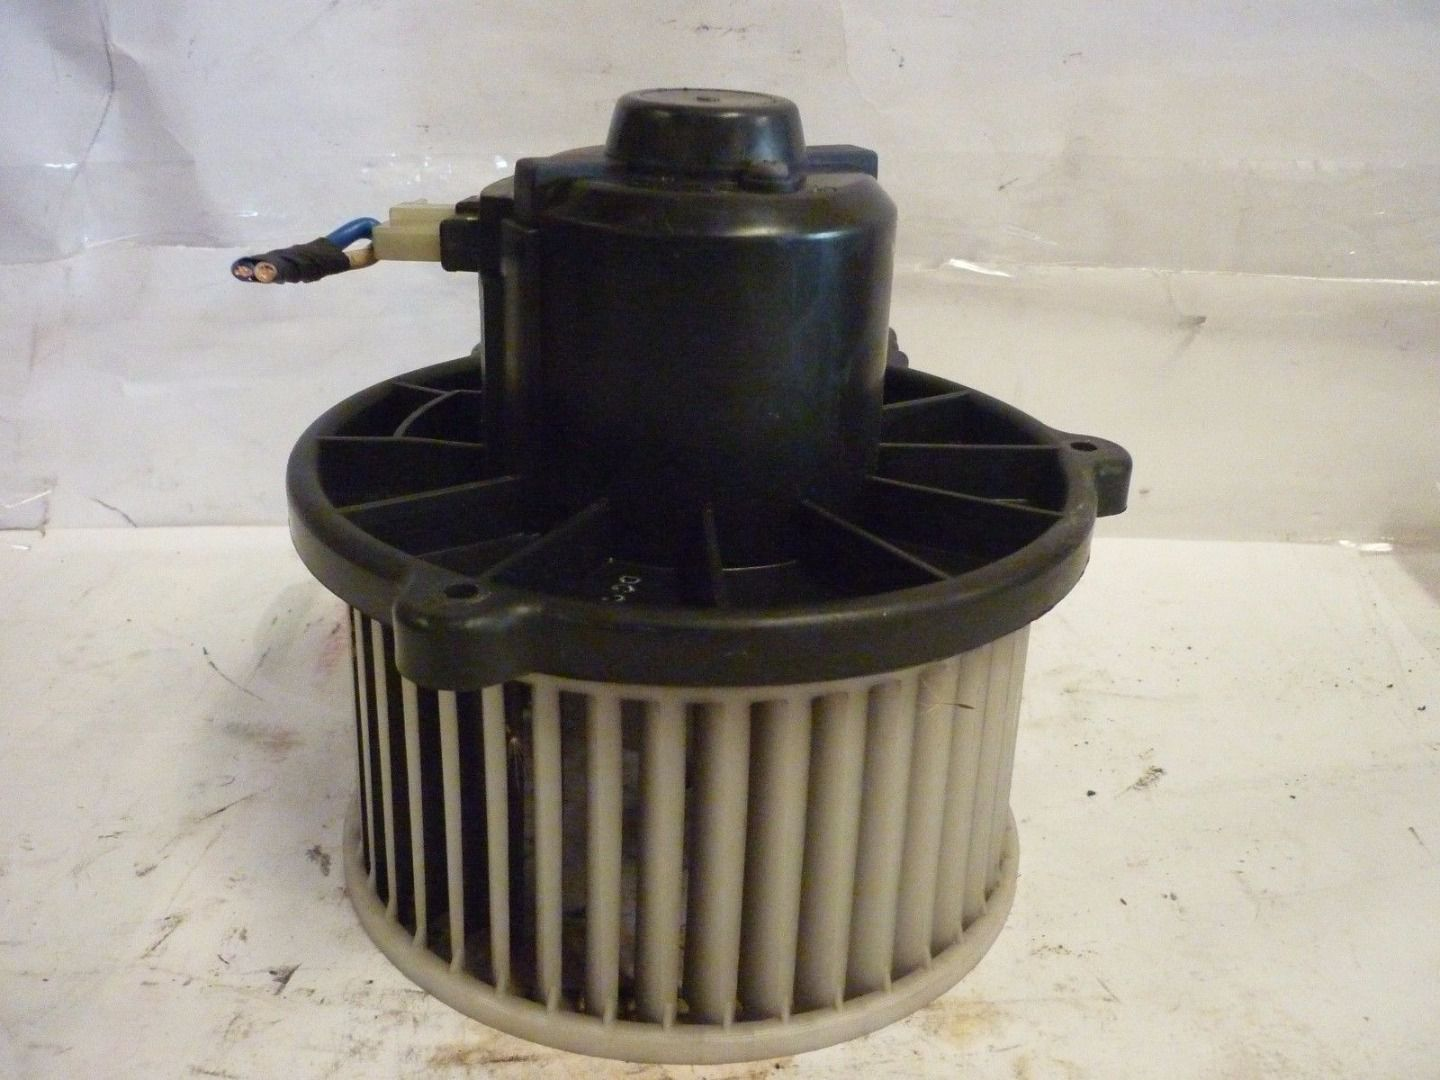 Reasons your car won 39 t heat heater stopped working for Heater blower motor not working